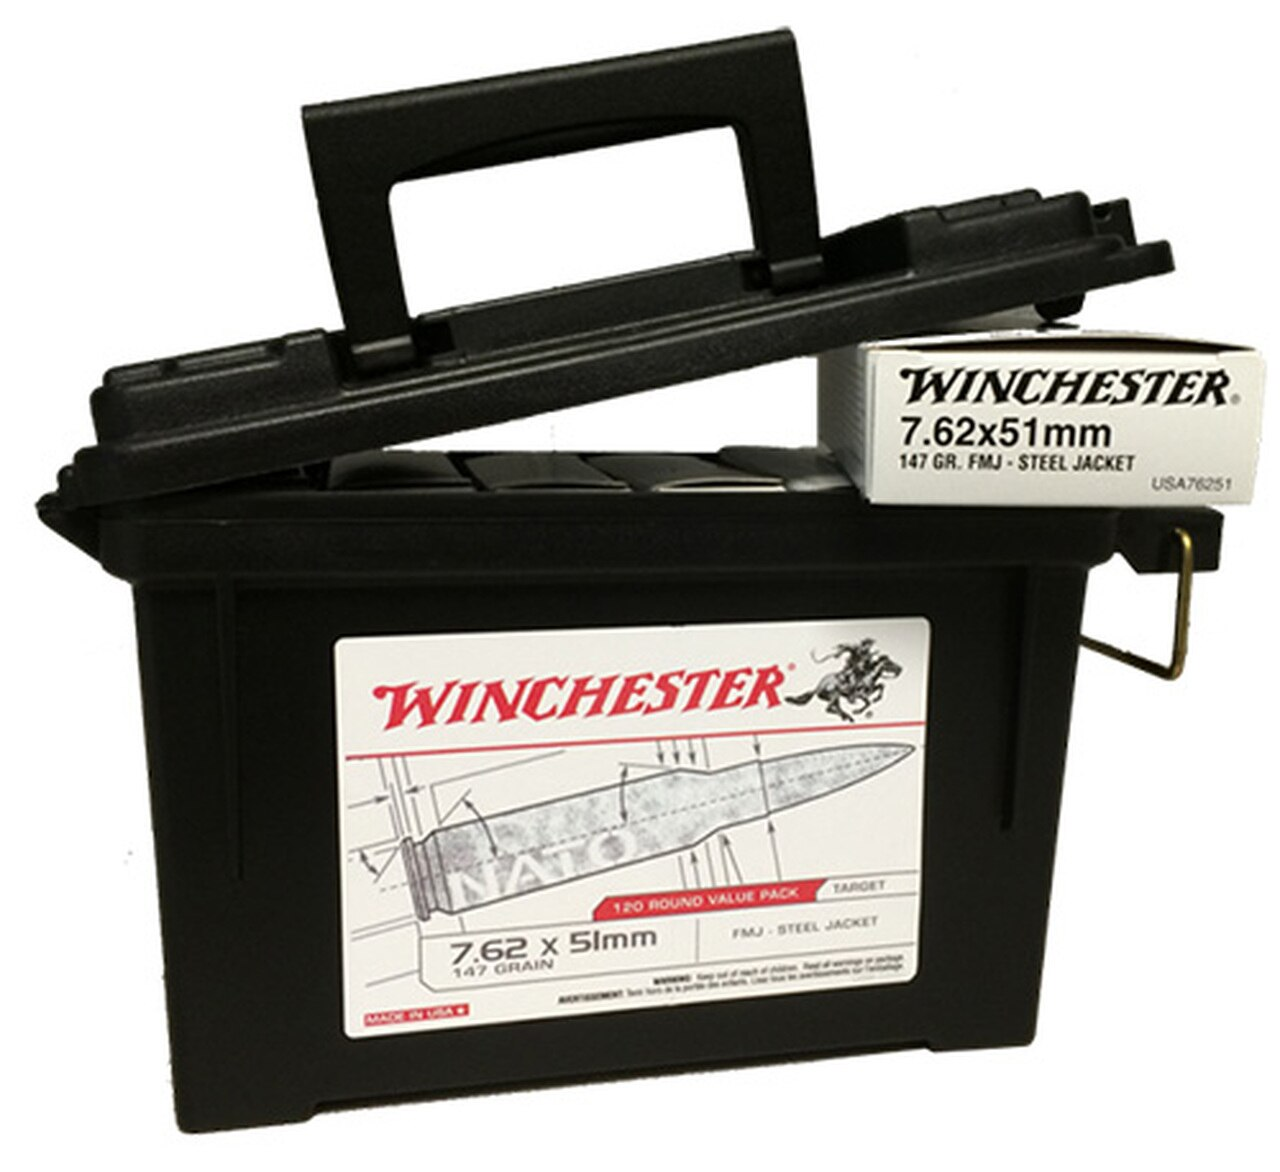 Image of Winchester 7.62mmx51mm NATO 147gr, FMJ, 120rd Ammo Can